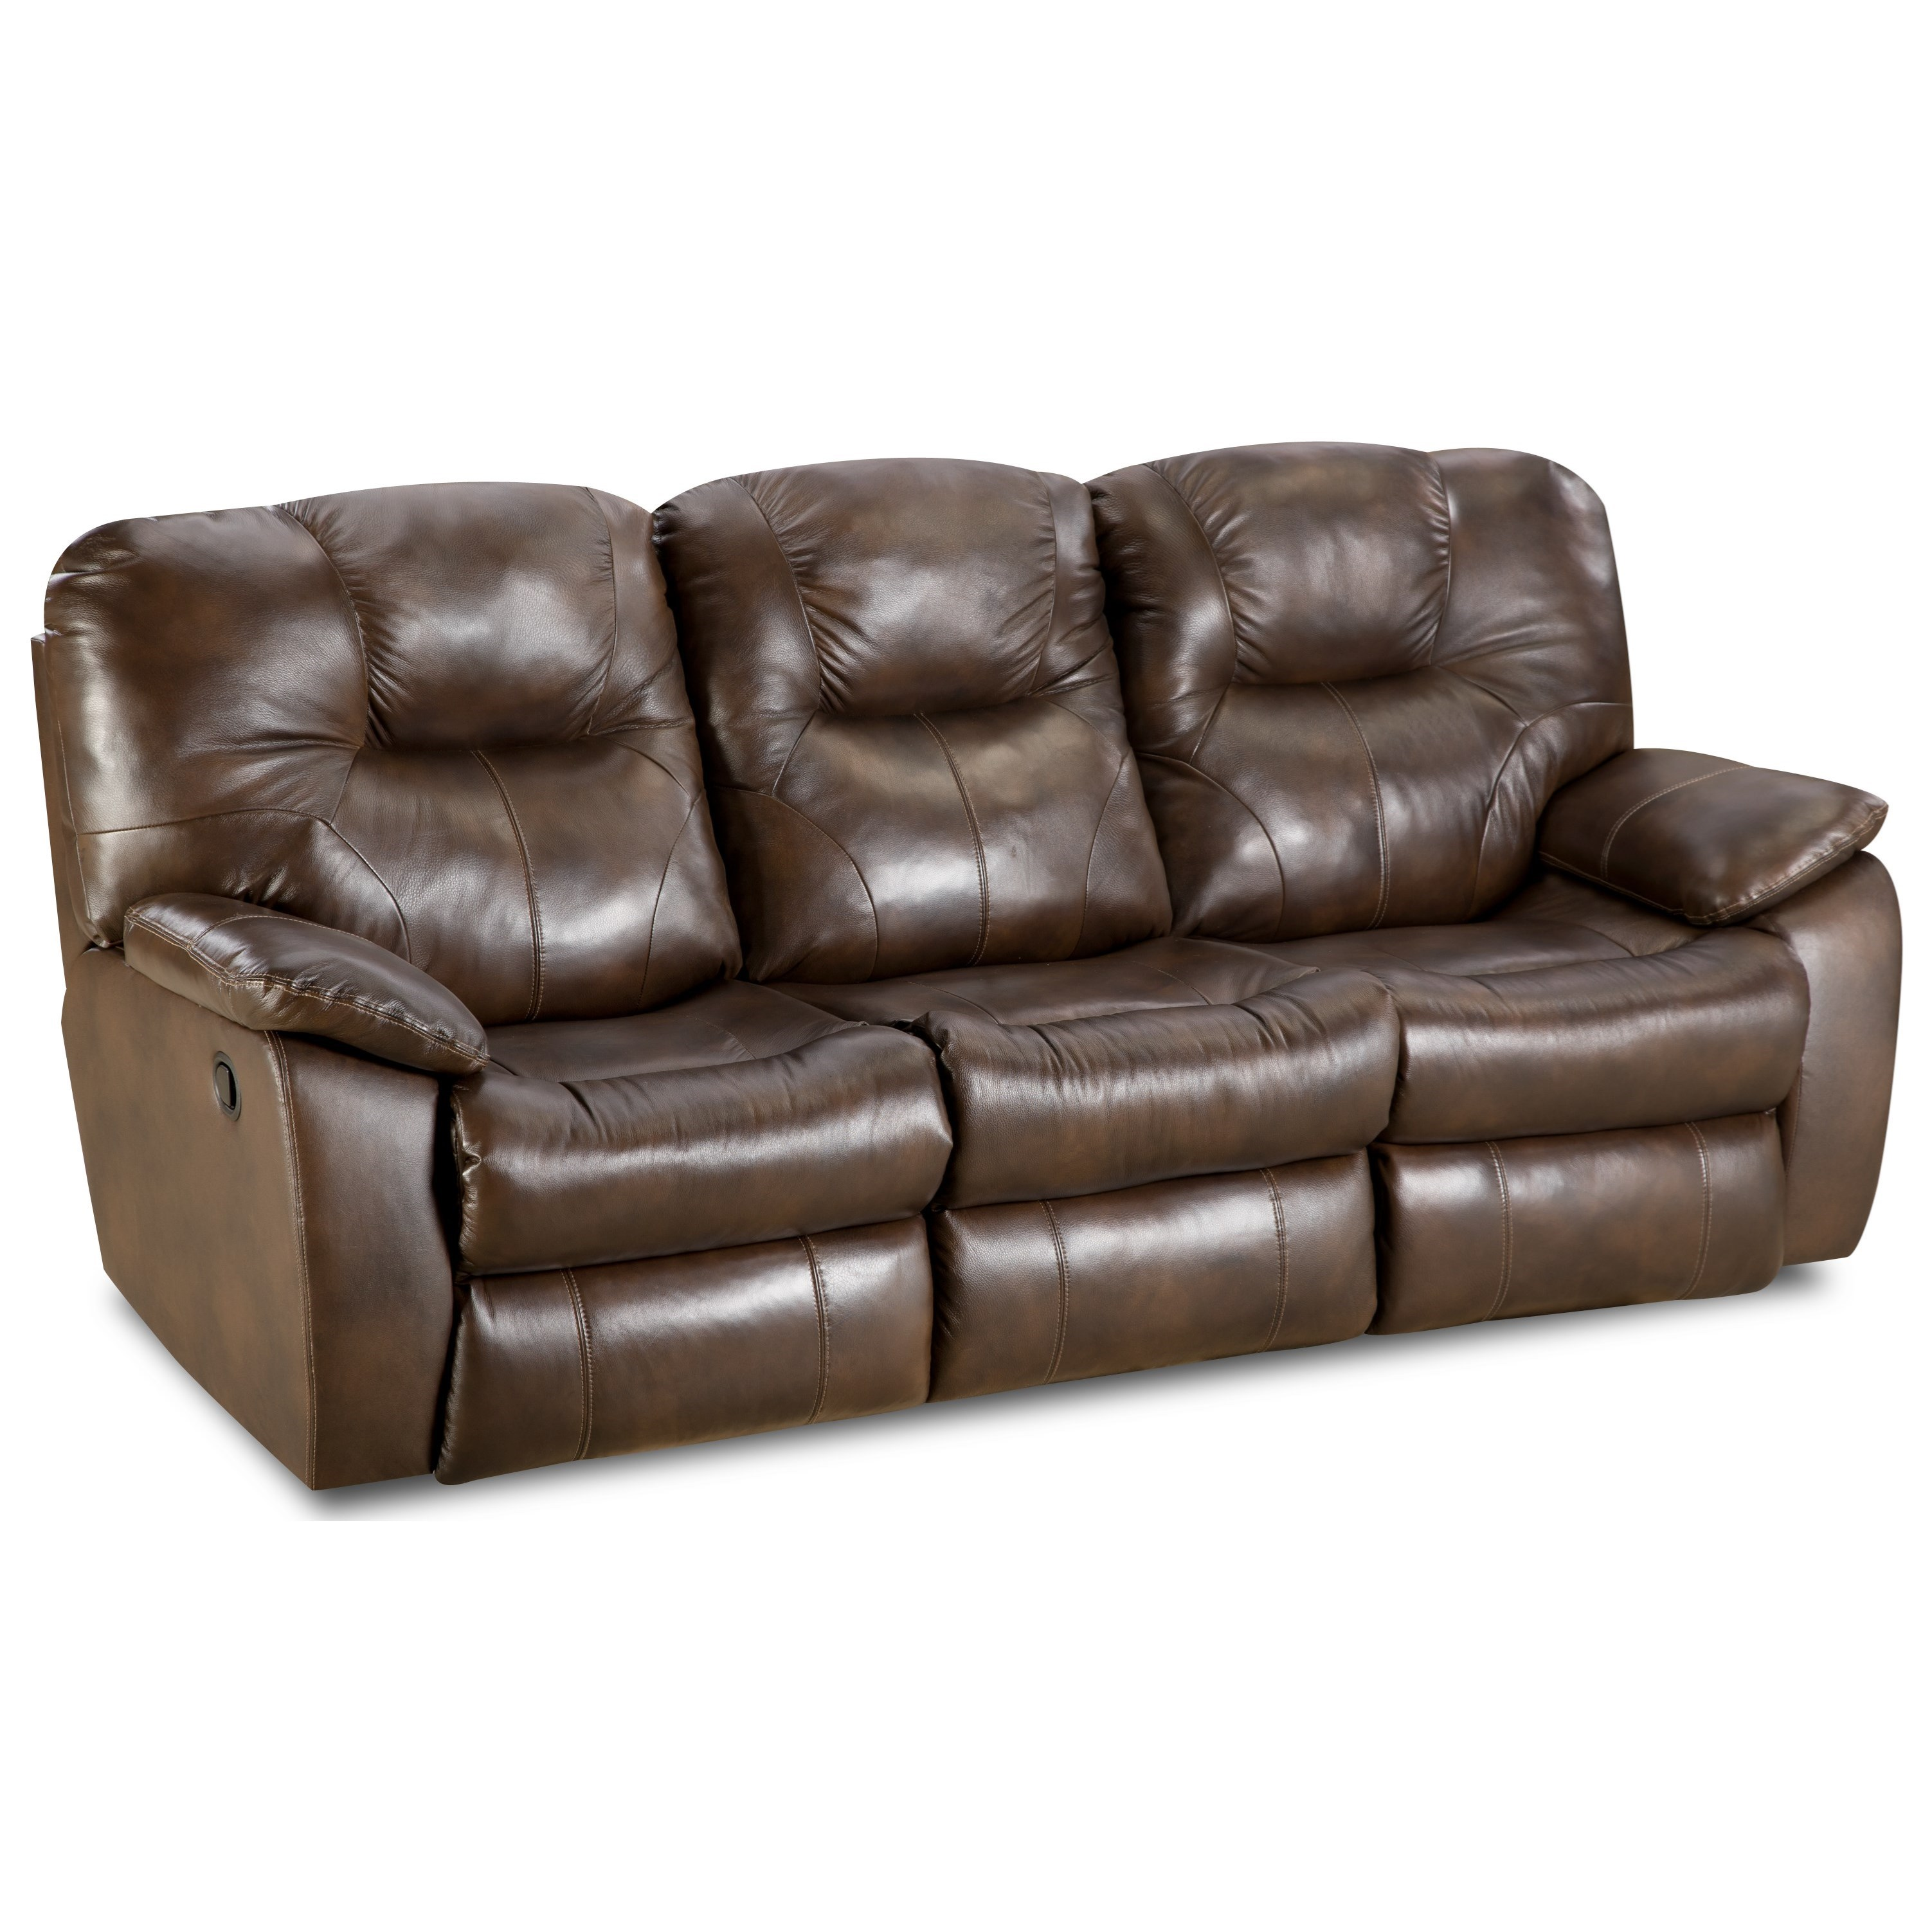 Avalon Power Reclining Sofa by Southern Motion at Sparks HomeStore